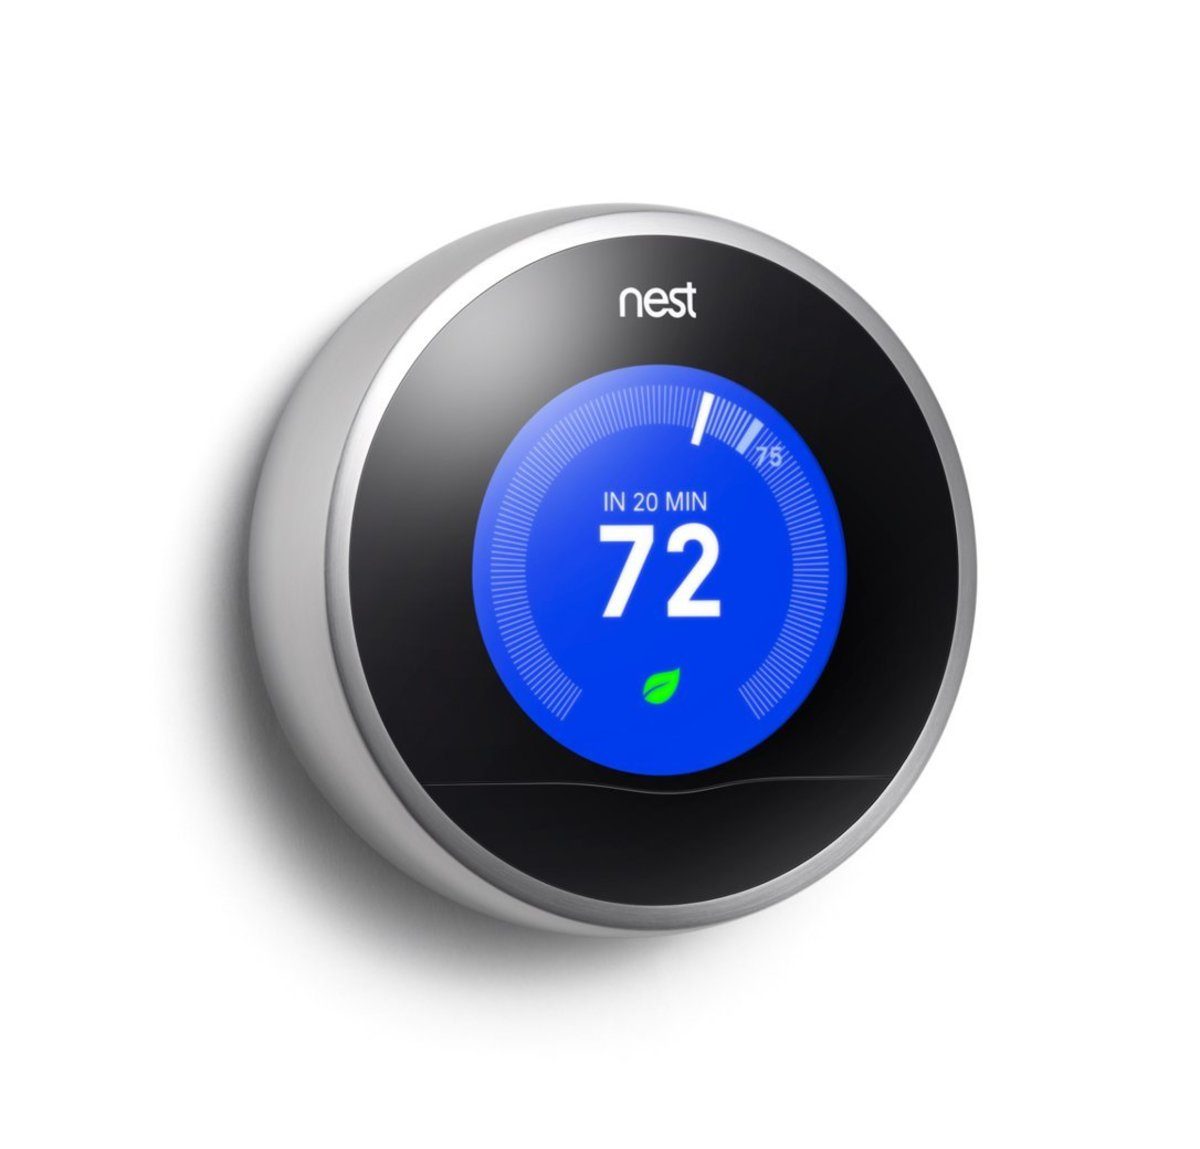 Nest Thermostats make your home more energy efficient by learning your behaviors and adjusting the temperature accordingly